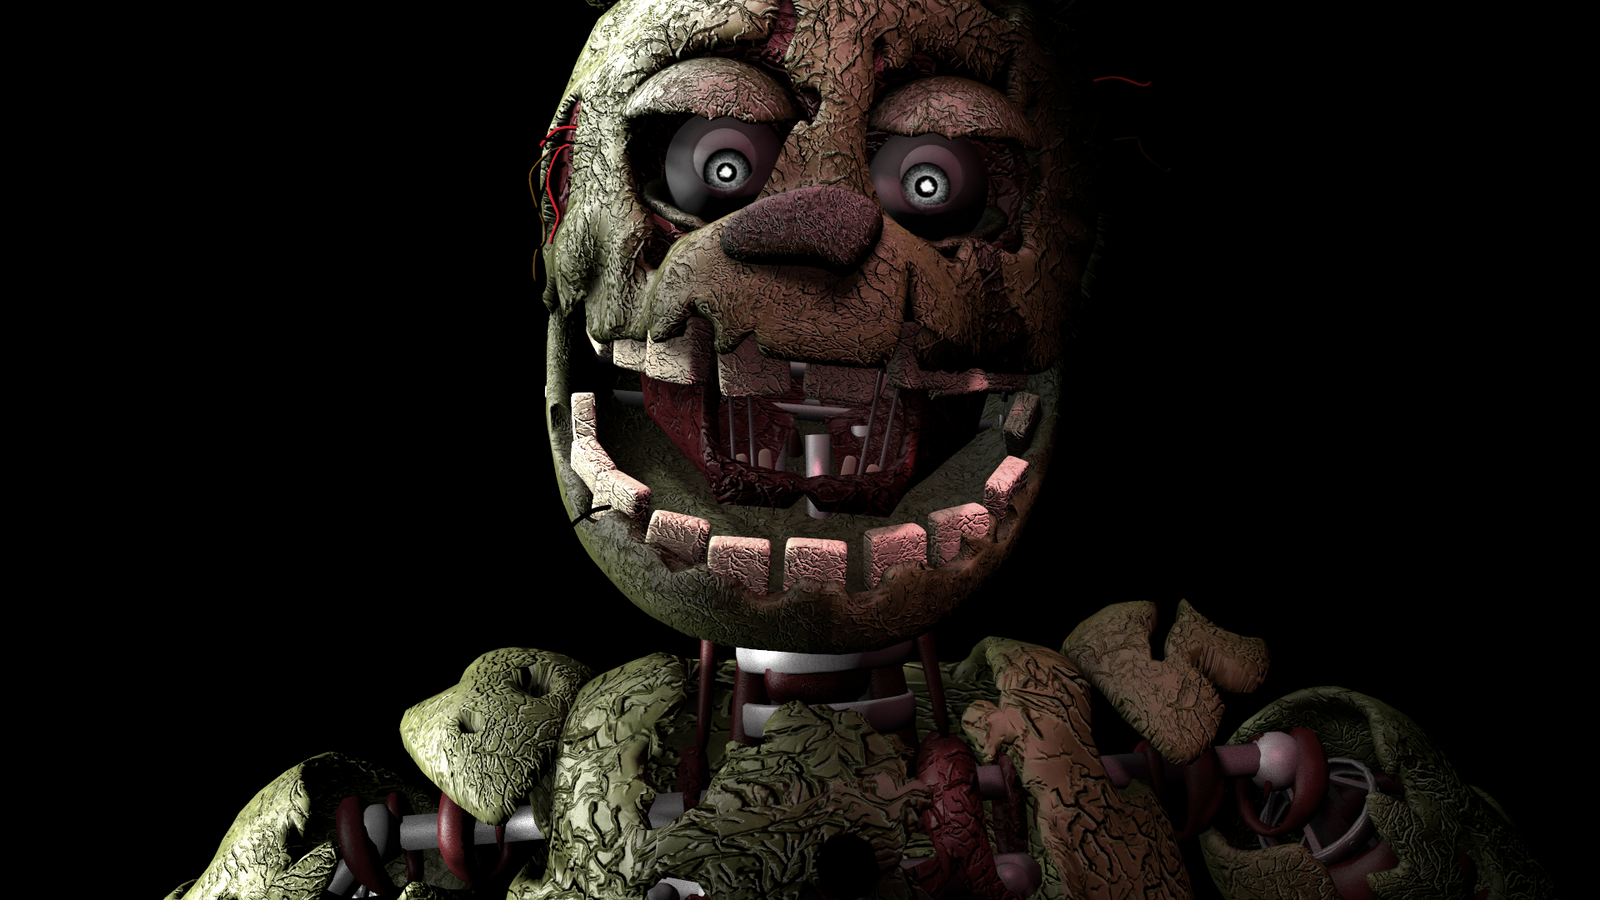 Fnaf sfm 3 springtrap secret image v1 by martin3x on for Http pictures